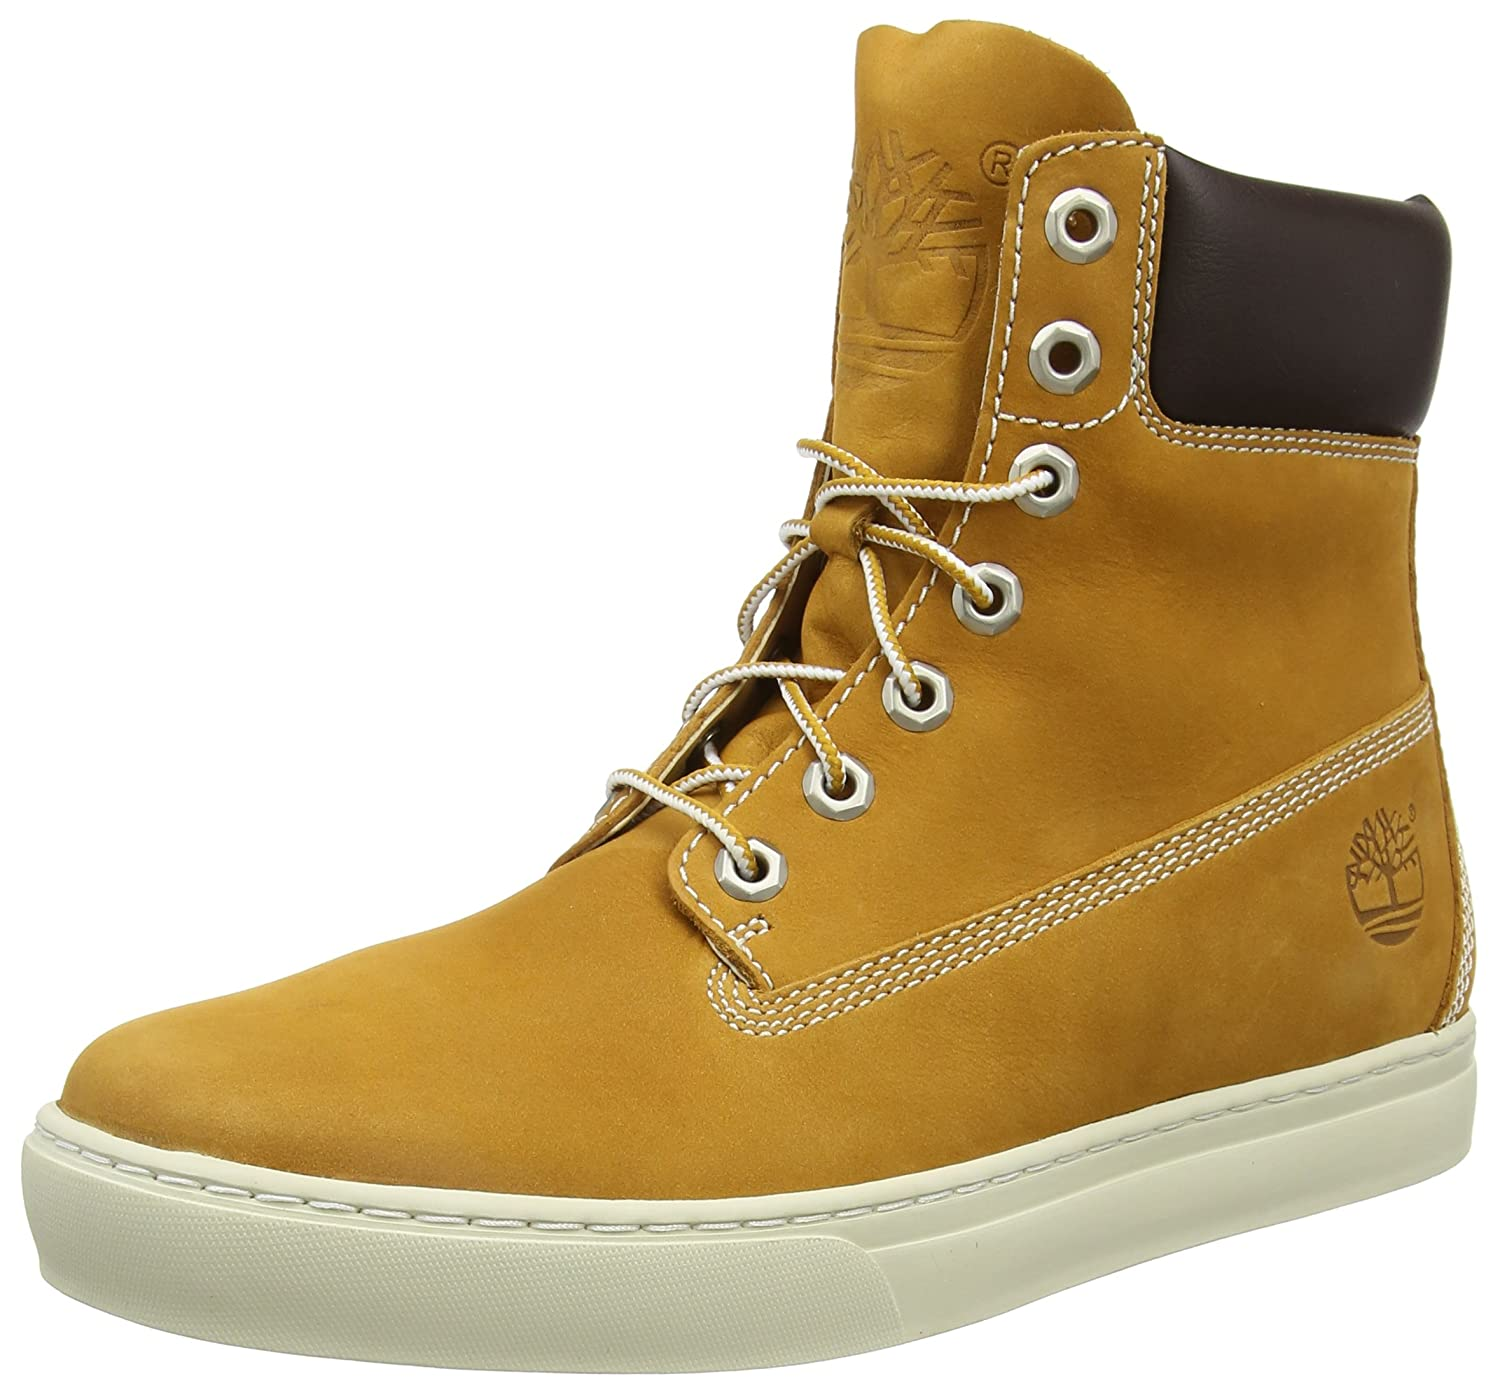 Timberland Men's Newmarket 6 Fashion Boots TB06667R231